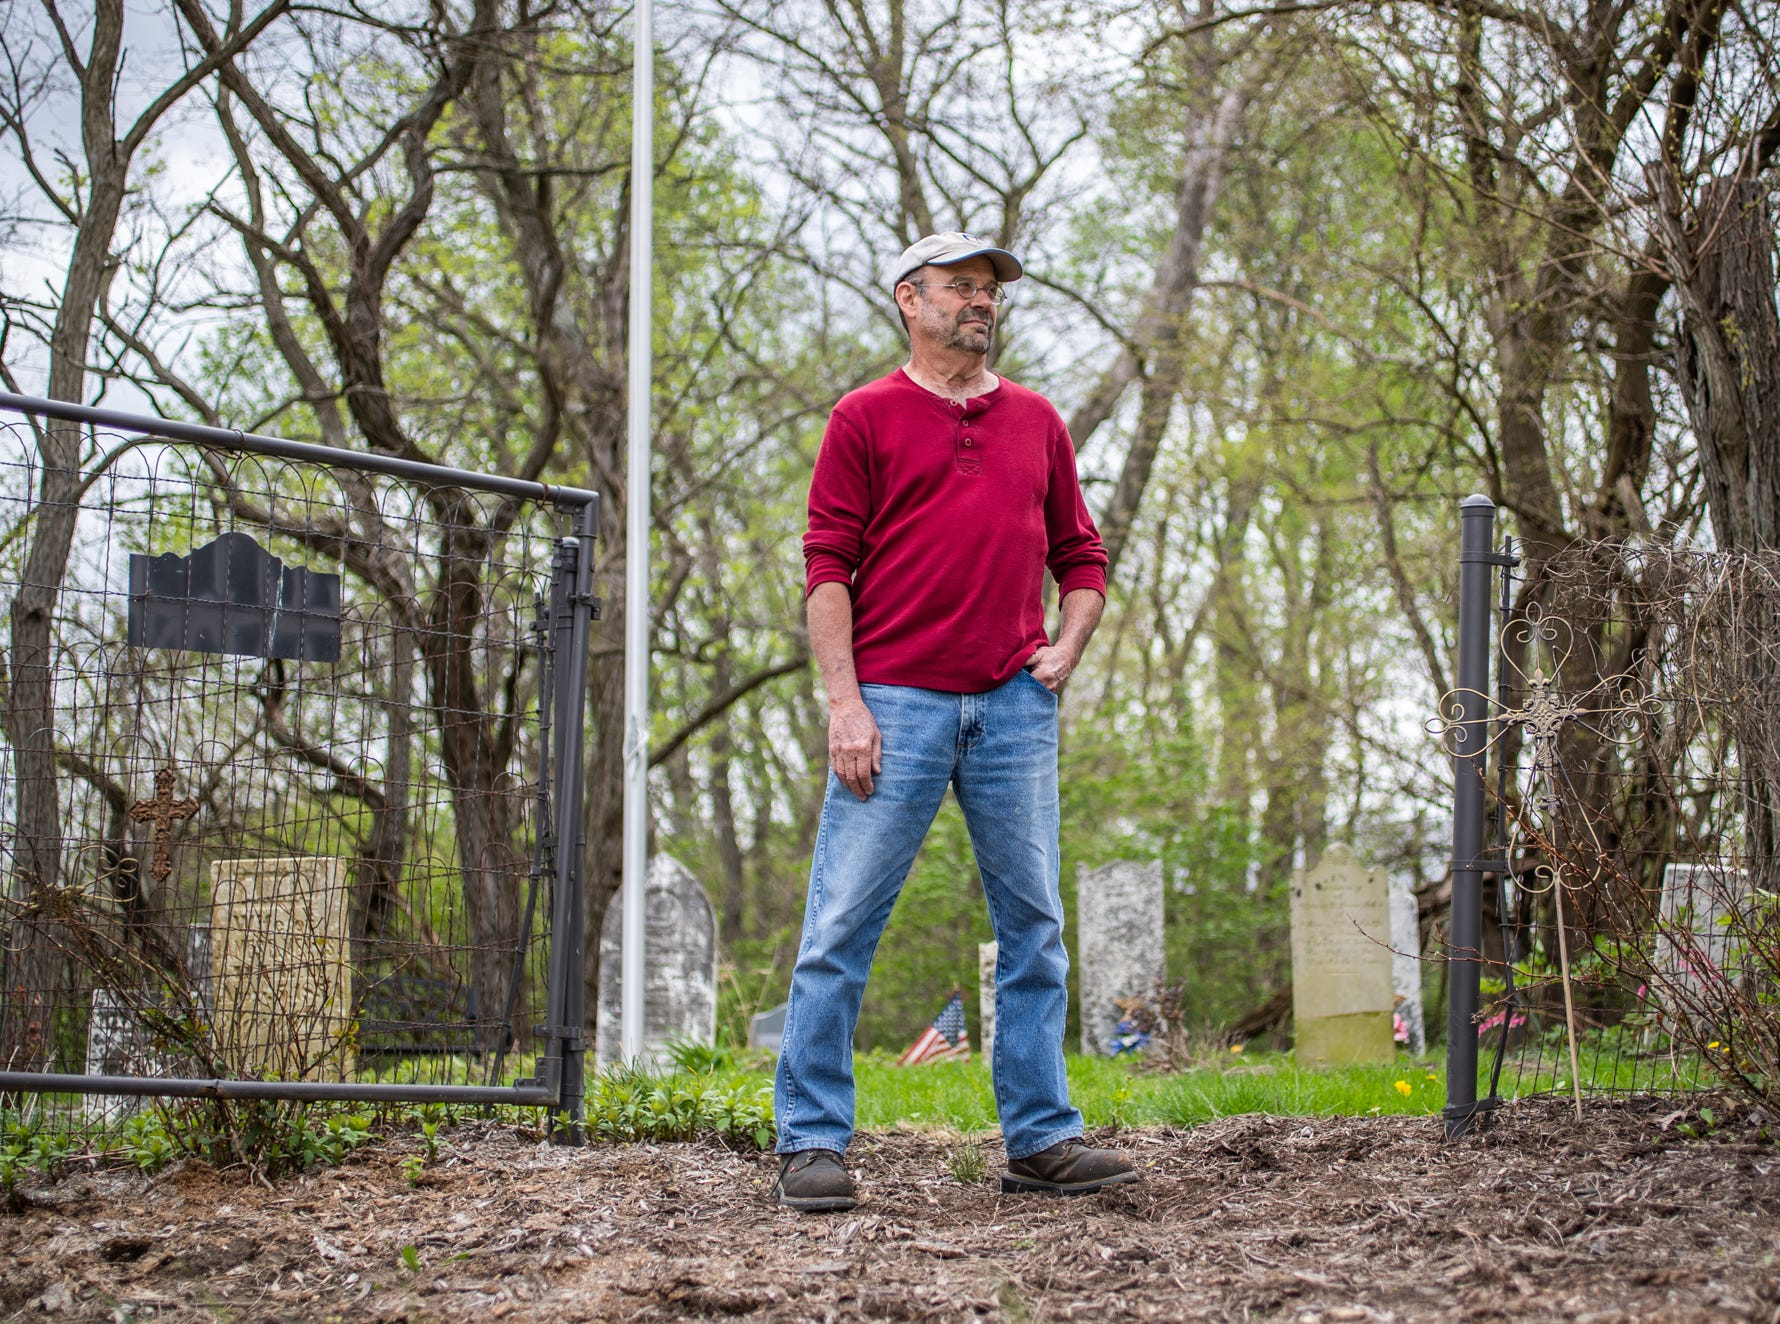 """Jeff Purvis stands in front of his family's gravesite in southern Marion county on Wednesday, May 1, 2019. The land where the gravesite sits was settled by Pruvis' great-great-great-grandfather, Alexander Joyce, in the late 1830s. When he settled, Joyce brought a slave, Price Joyce, with him from Patrick County, Virginia. The grave of Price was unmarked until Purvis placed a stone where he believes Price's body lays. """"I didn't enslave this man,"""" said Purvis, wiping away tears. """"But I do have it in my power to apologize. And my God, I'm sorry. Too little, too late."""""""